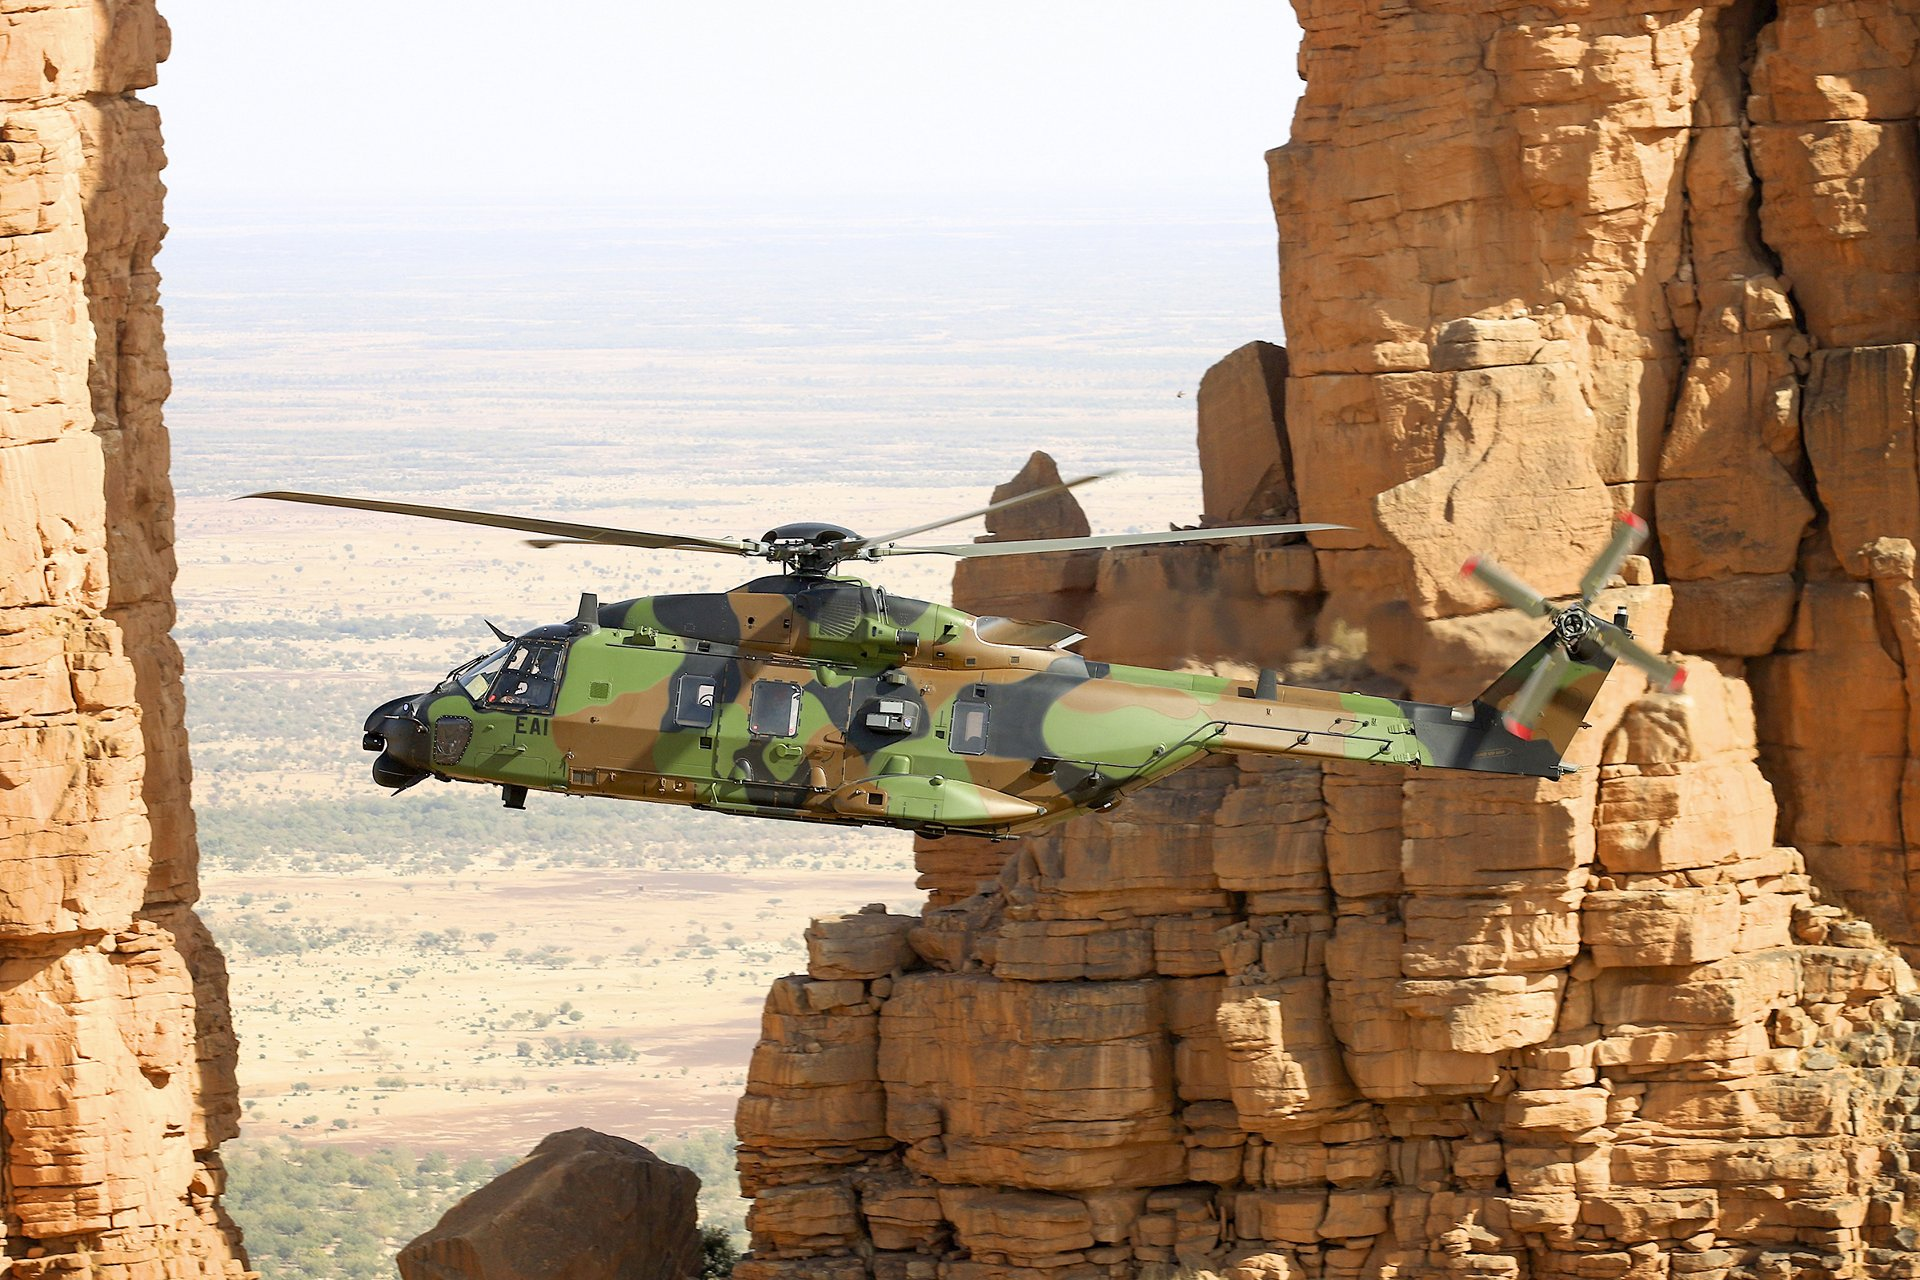 An NH90 operated by the 1st Combat Helicopter Regiment (RHC) of the French Army Light Aviation (ALAT) unit is shown in flight.